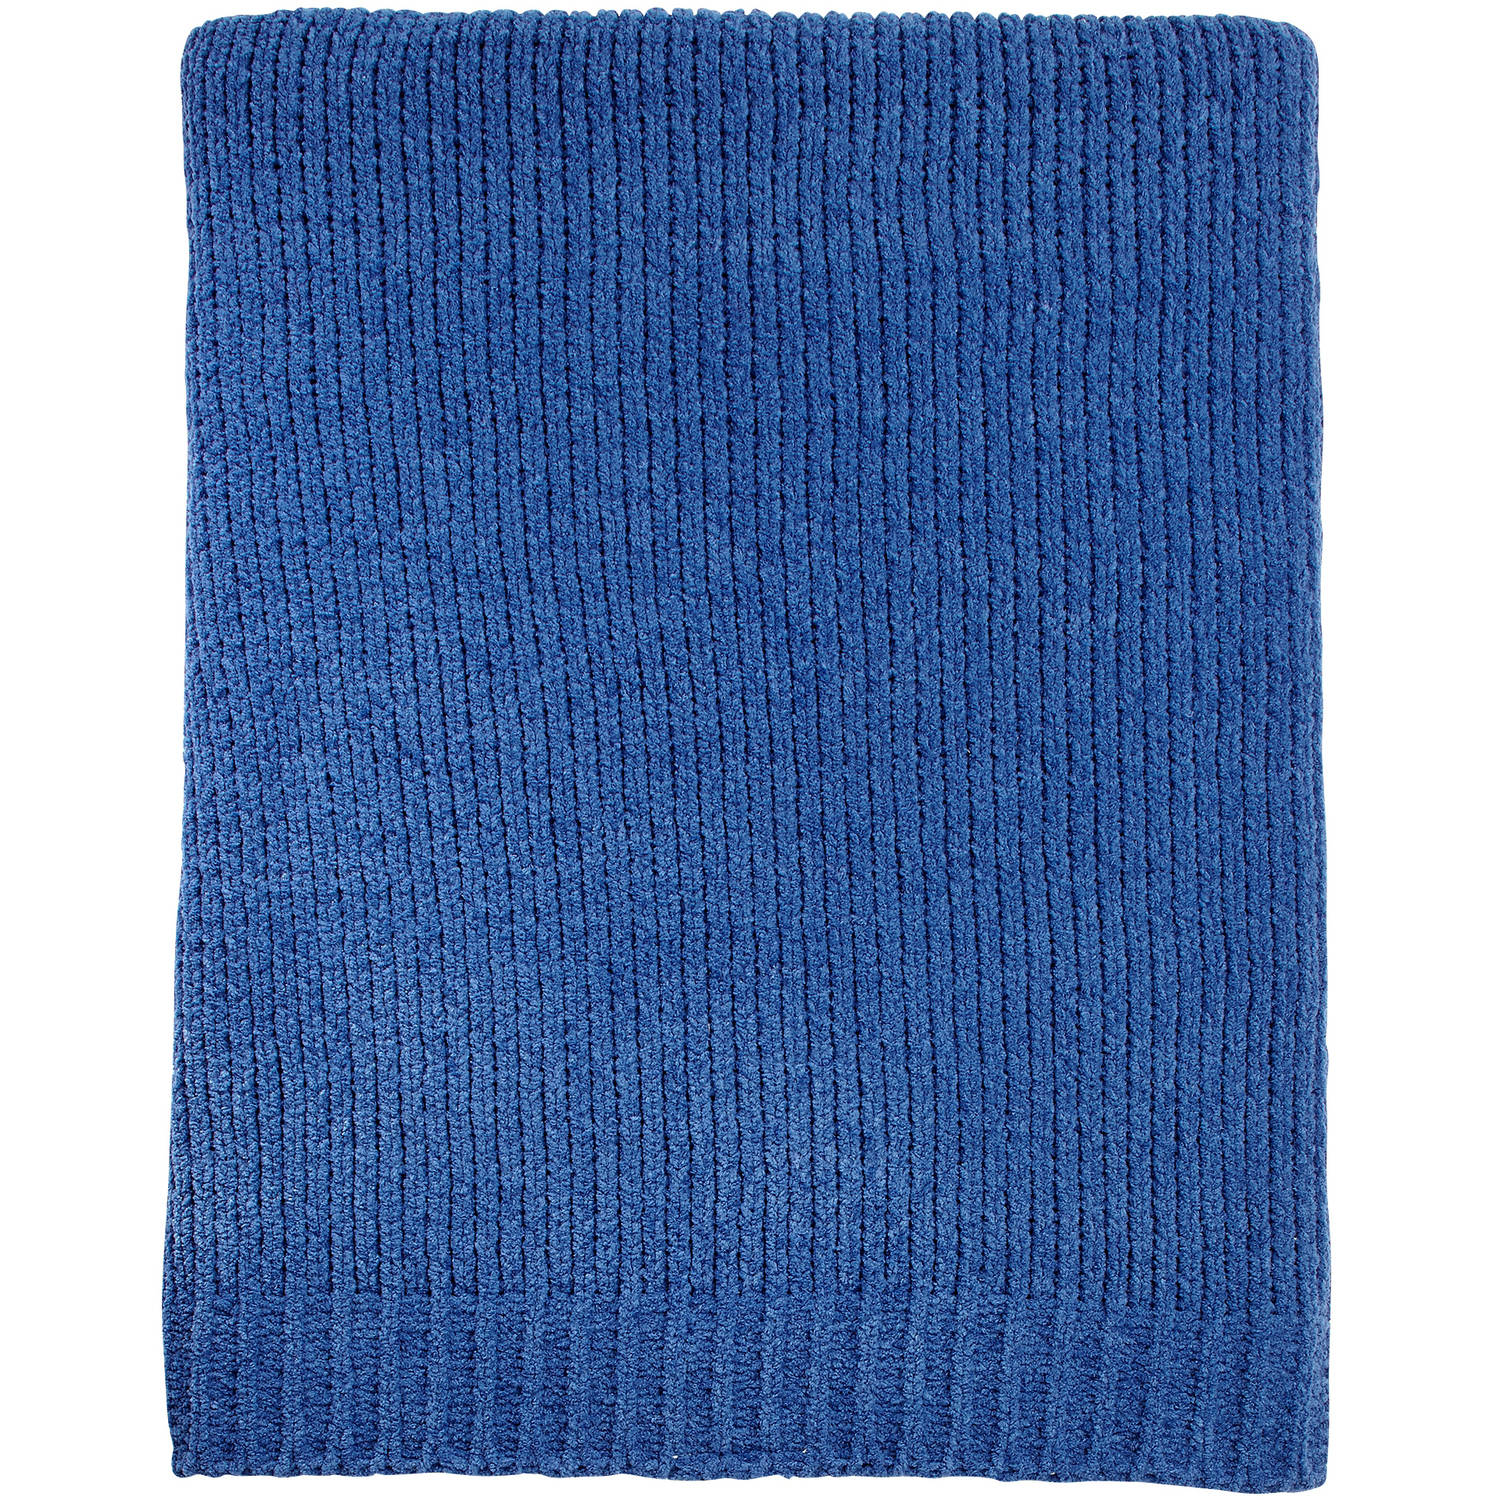 Little Love Chenille Blanket, Navy